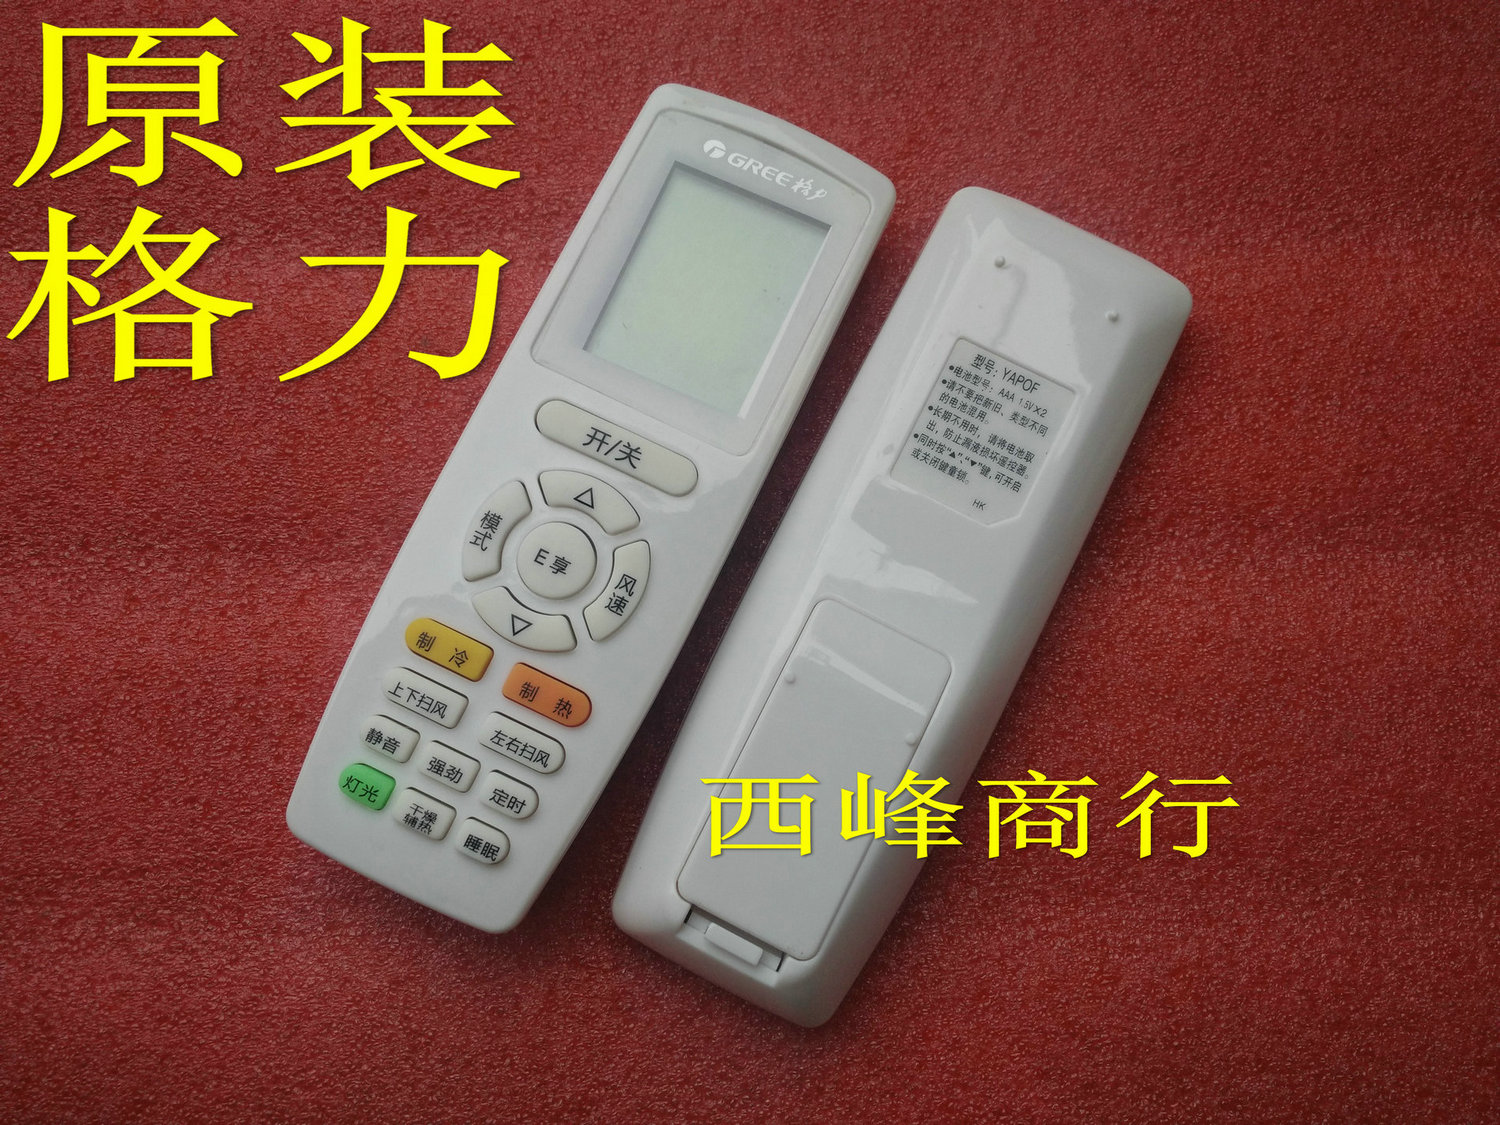 The original Gree name kfr-35GW/ (35583) FNAa-A2 Wang 1.5 cool inverter air conditioner remote control